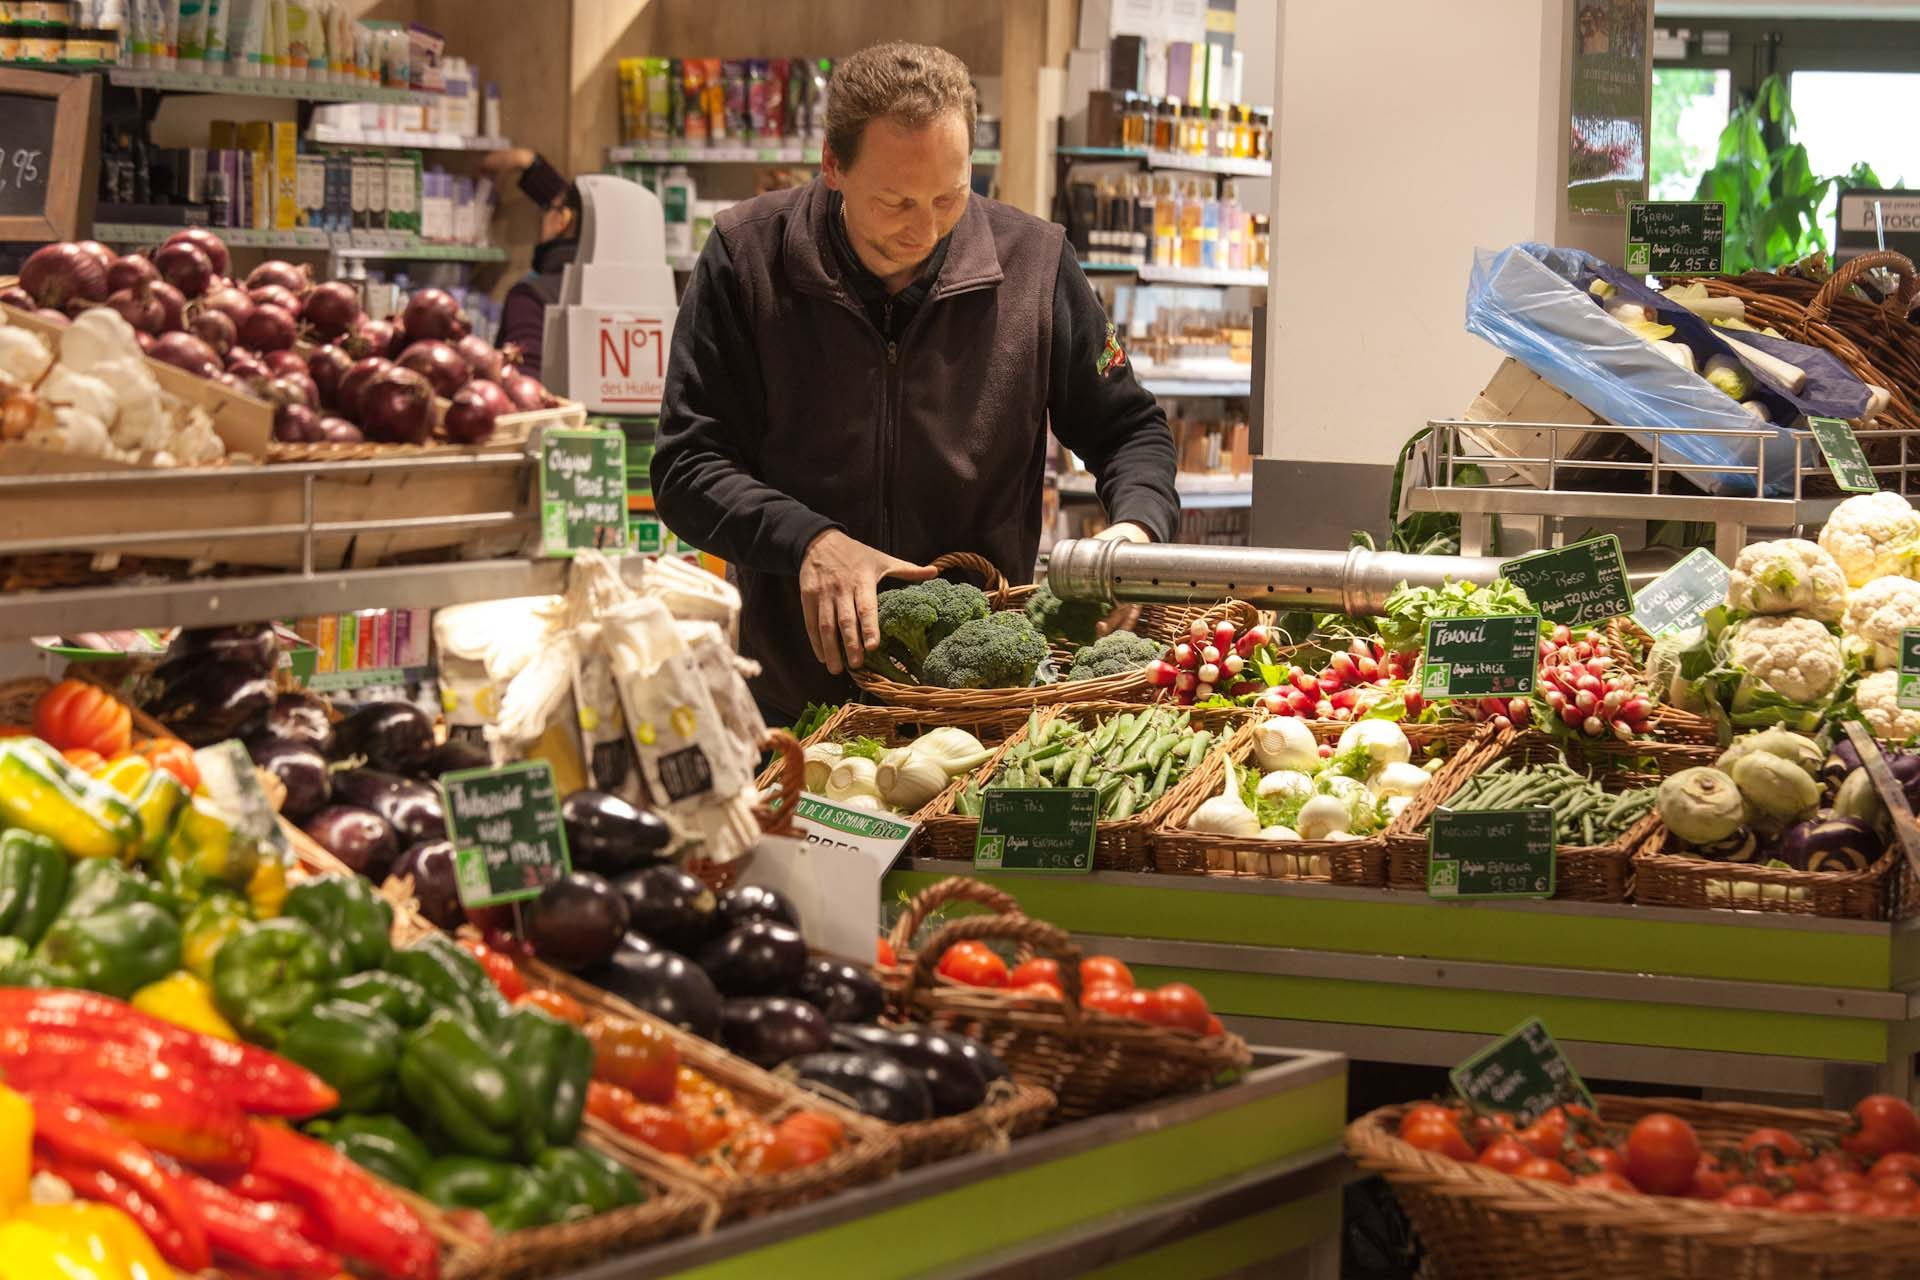 Olivier List, director of the organic supermarket 'Les Halles de Cernay', size about 800 m² with 40 employees.